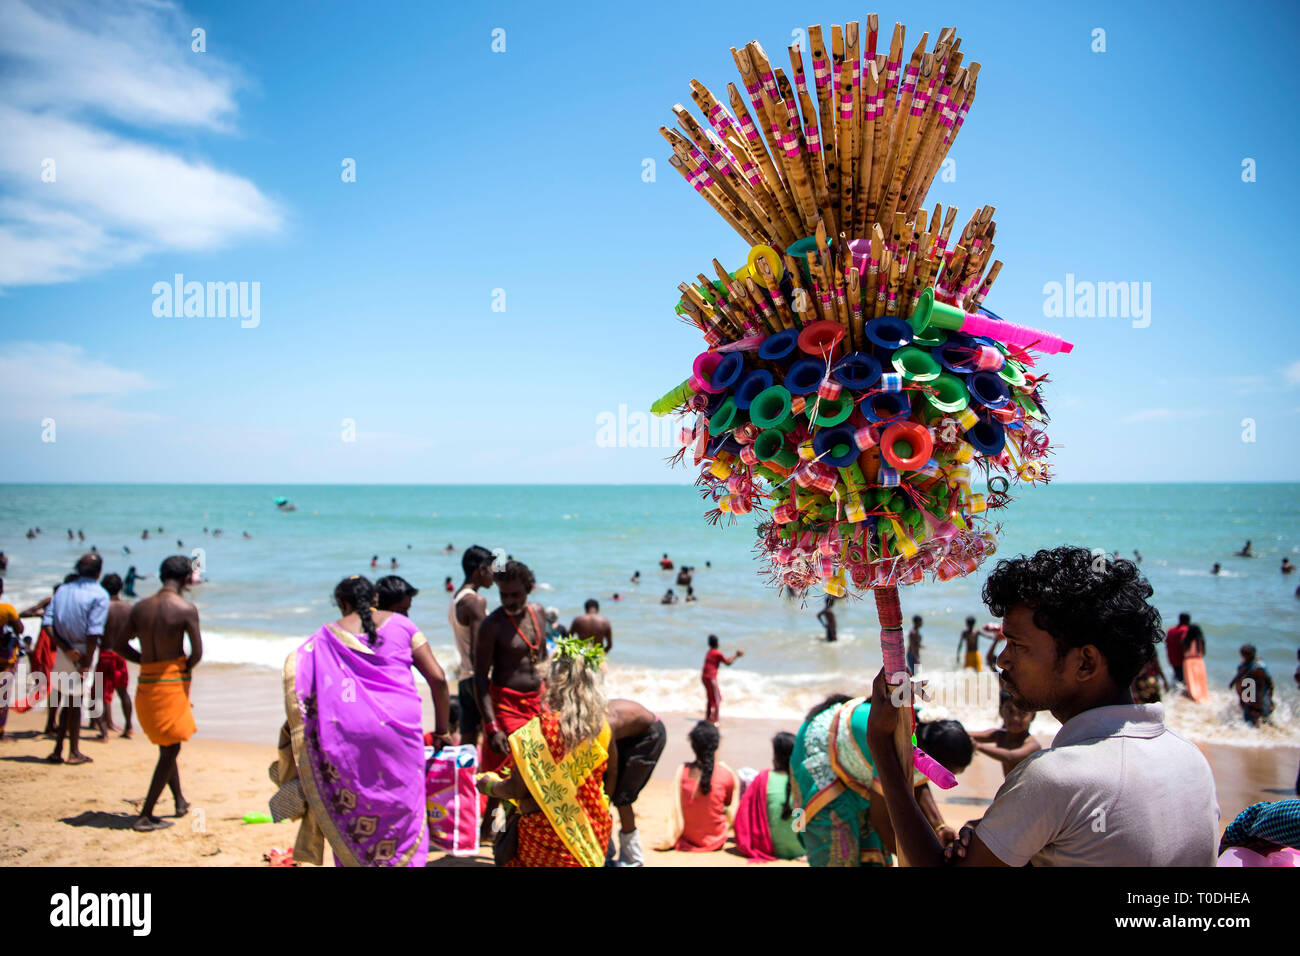 Hawkers selling flutes and candy floss, Kulasekharapatnam beach, Tamil Nadu, India, Asia - Stock Image